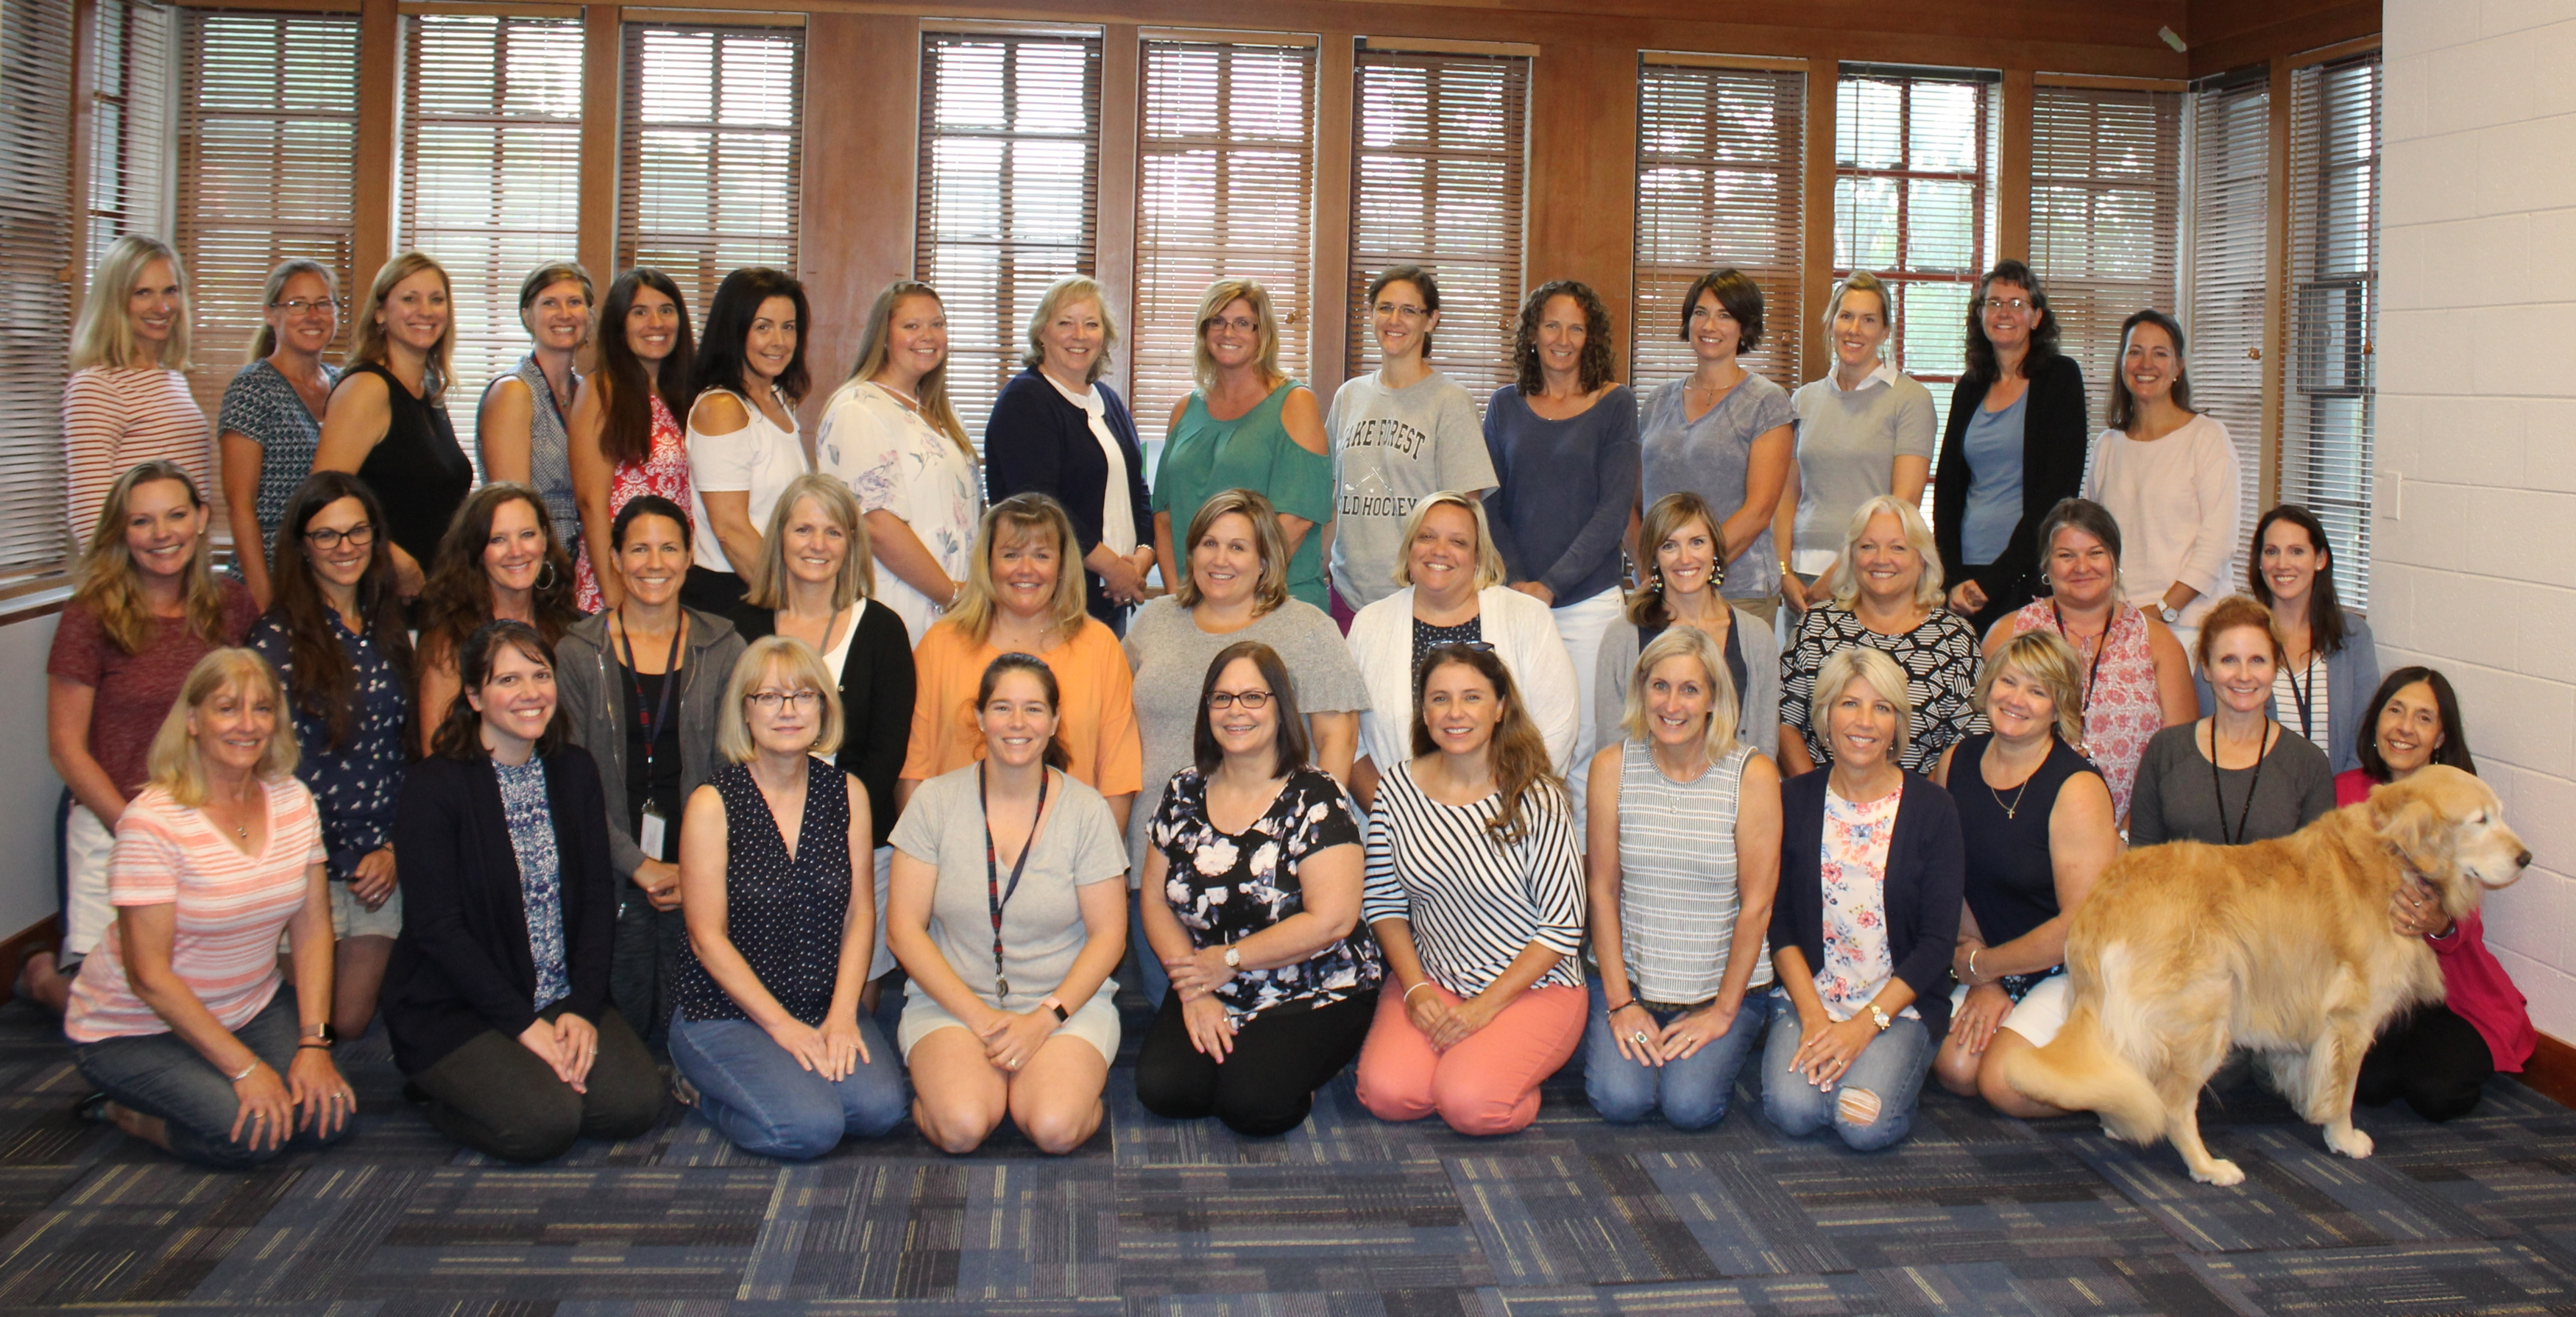 SJES Faculty and Staff photo